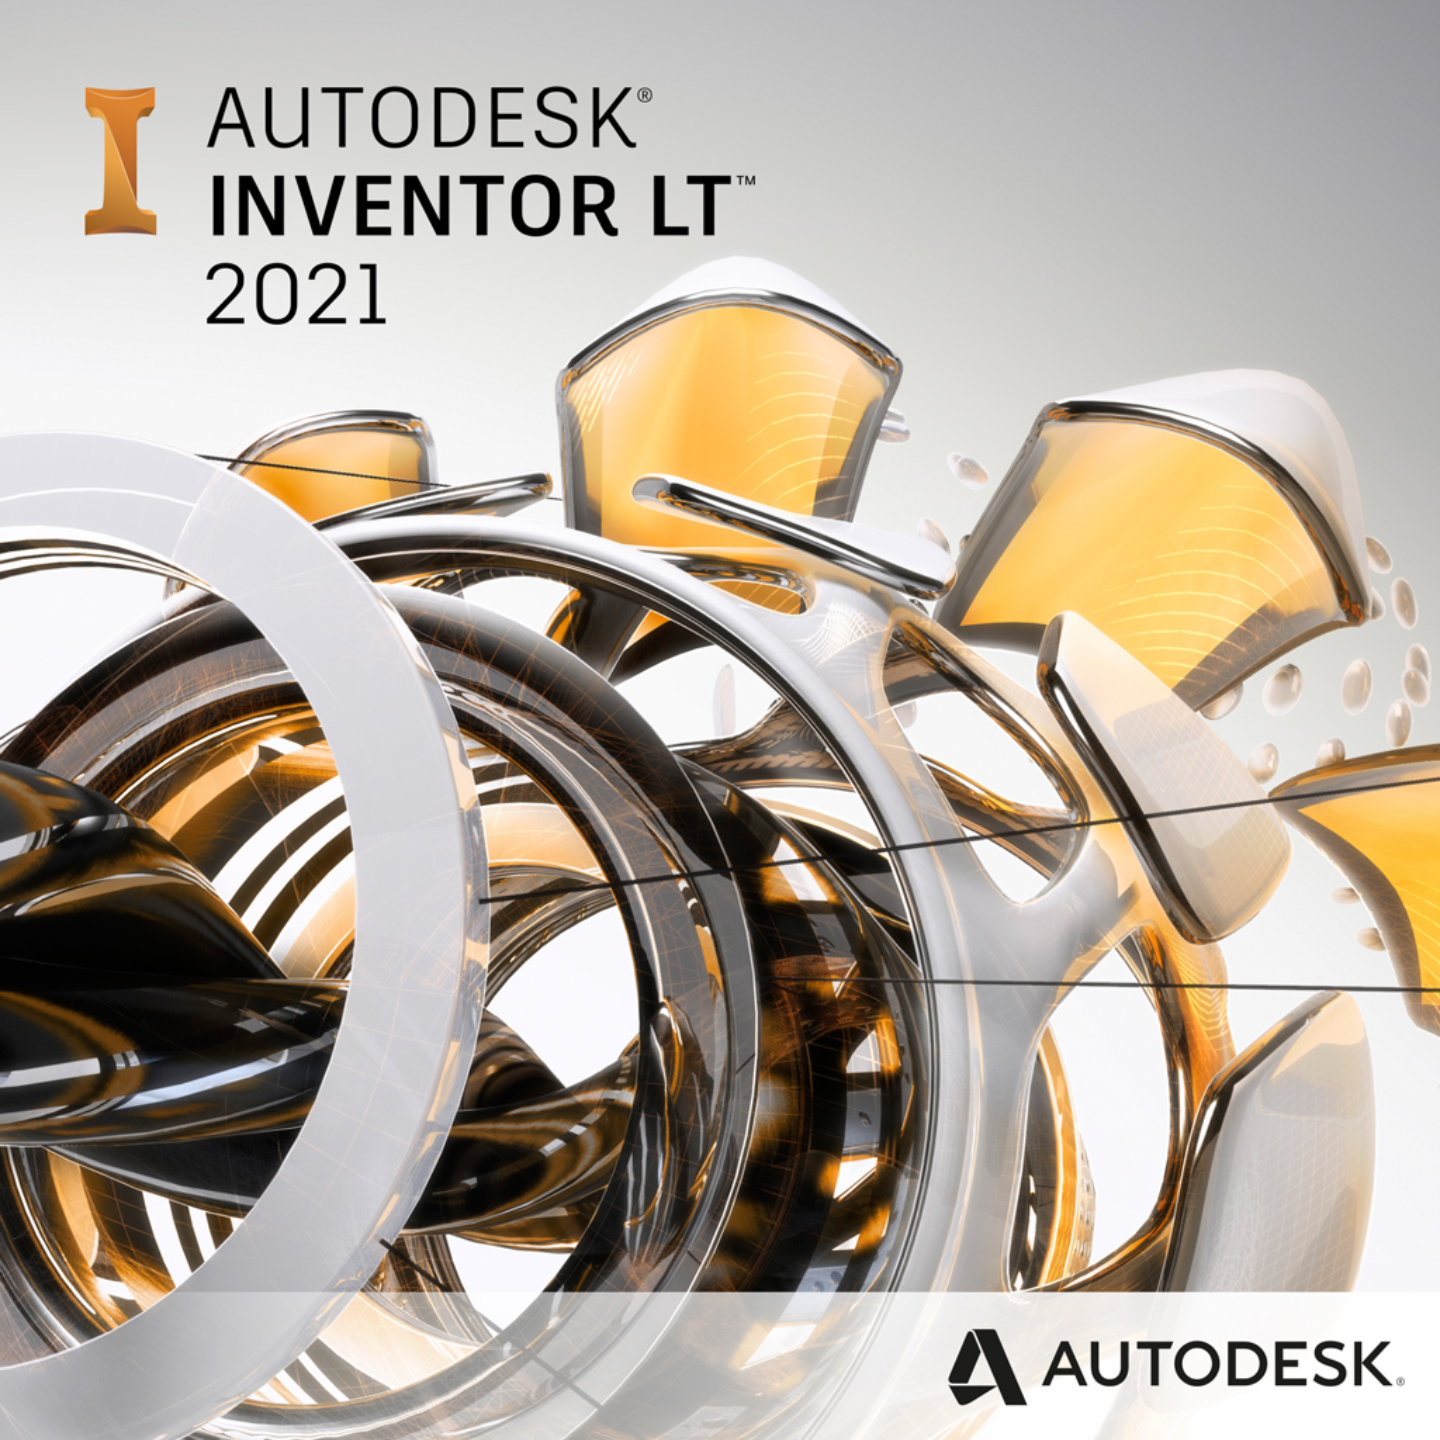 Autodesk Autocad Inventor LT Suite 2021 (3-Years Subscription)